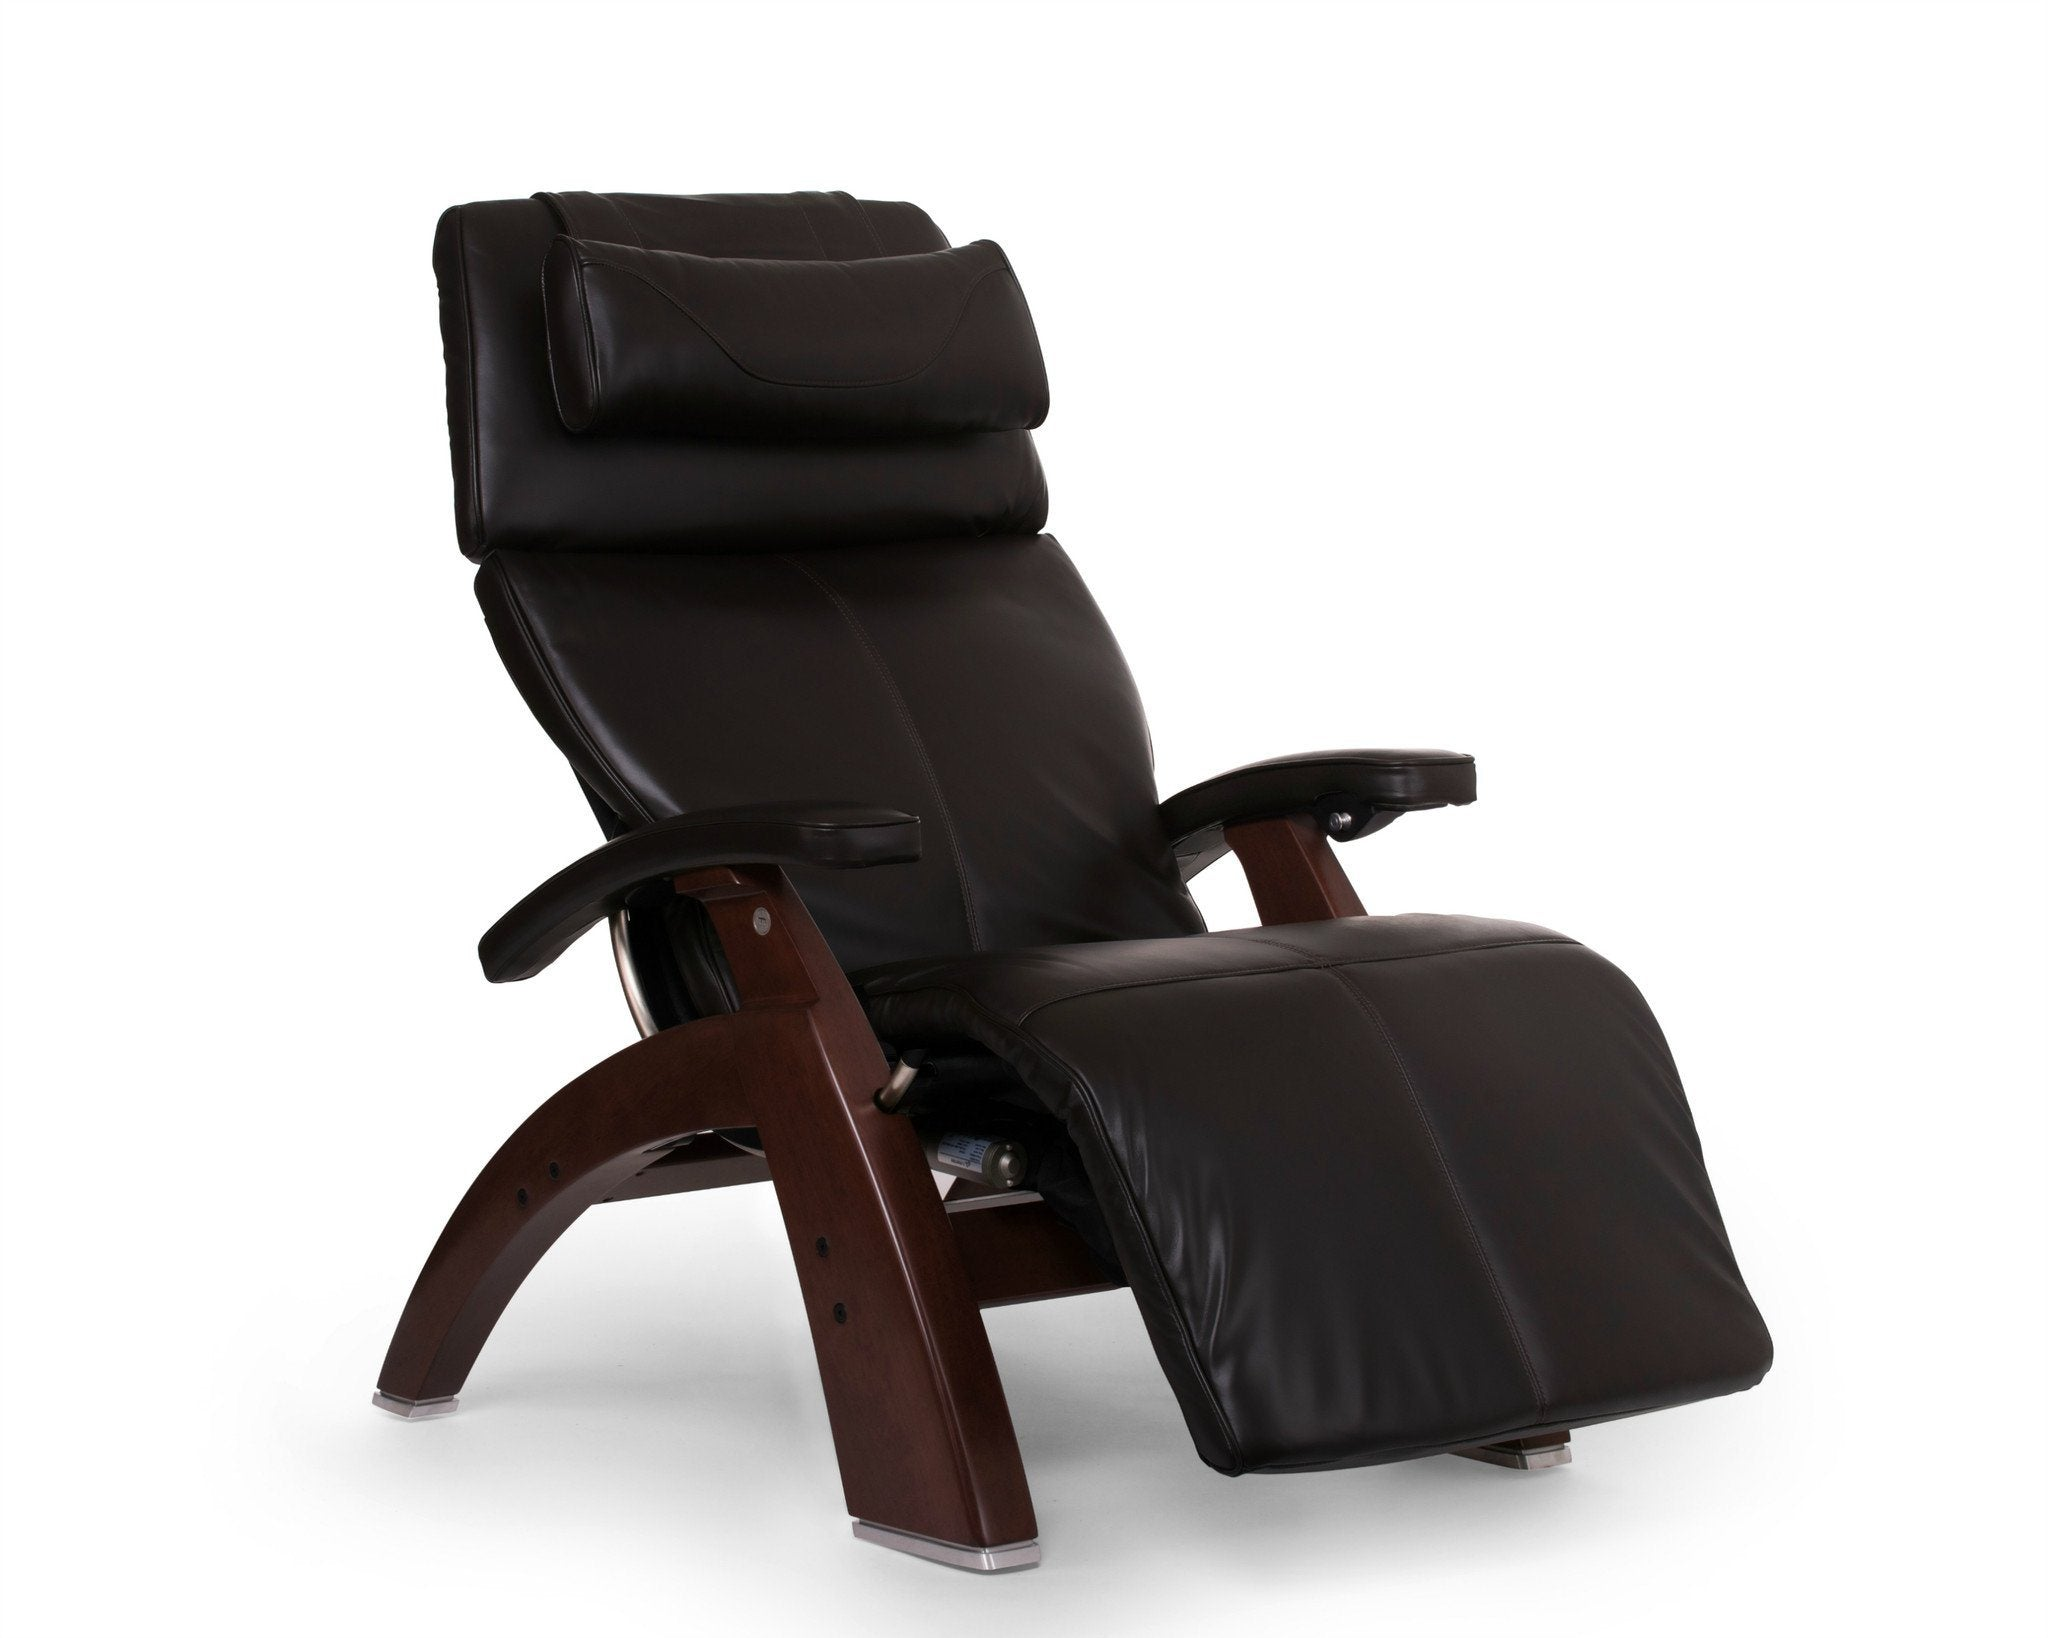 Perfect Chair PC 600 Omni Motion Silhouette Zero Gravity Recliner